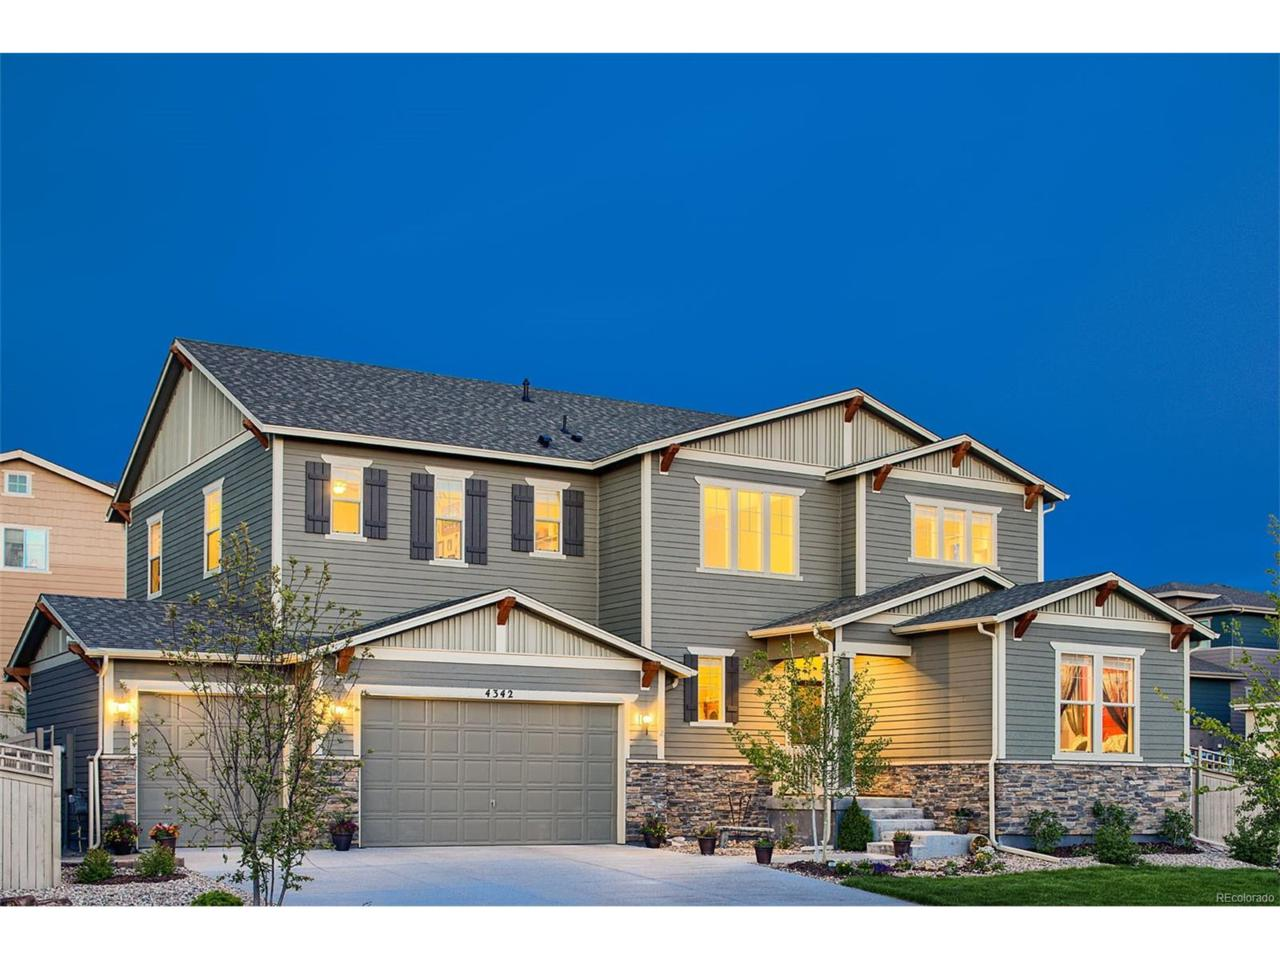 4342 Manorbrier Court, Castle Rock, CO 80104 (MLS #5673185) :: 8z Real Estate